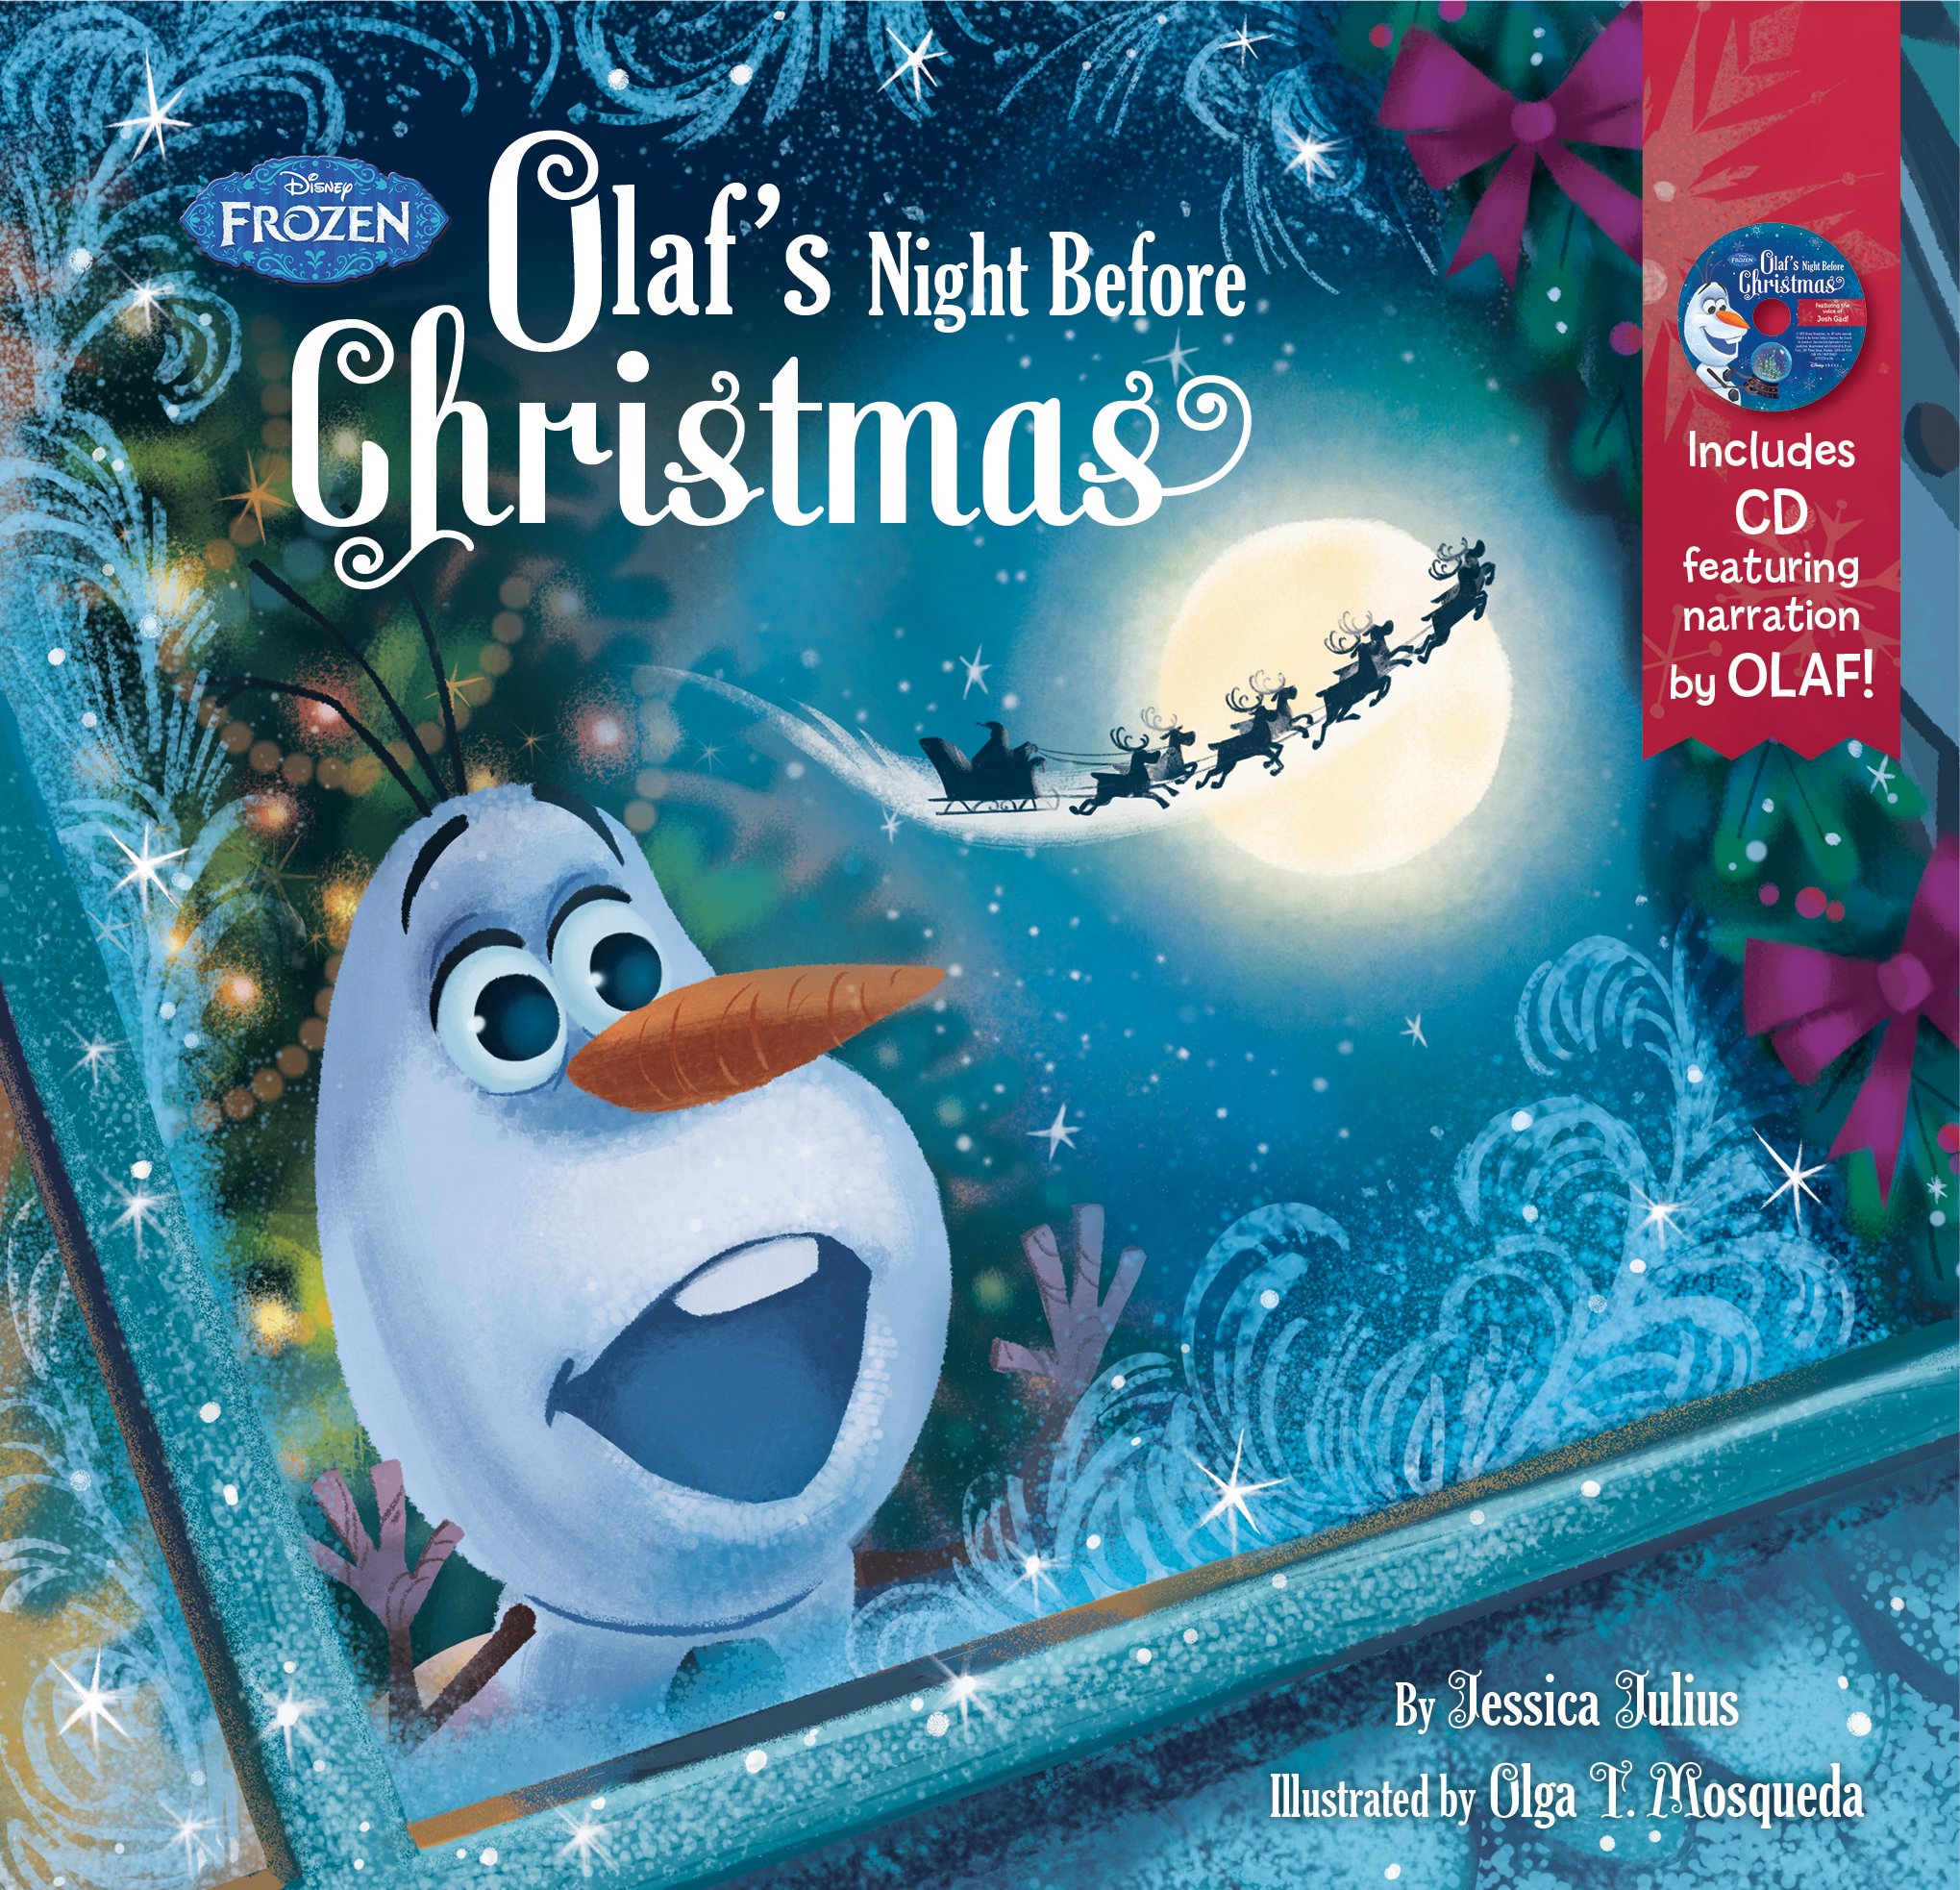 Frozen: Olaf's Night Before Christmas Book & CD